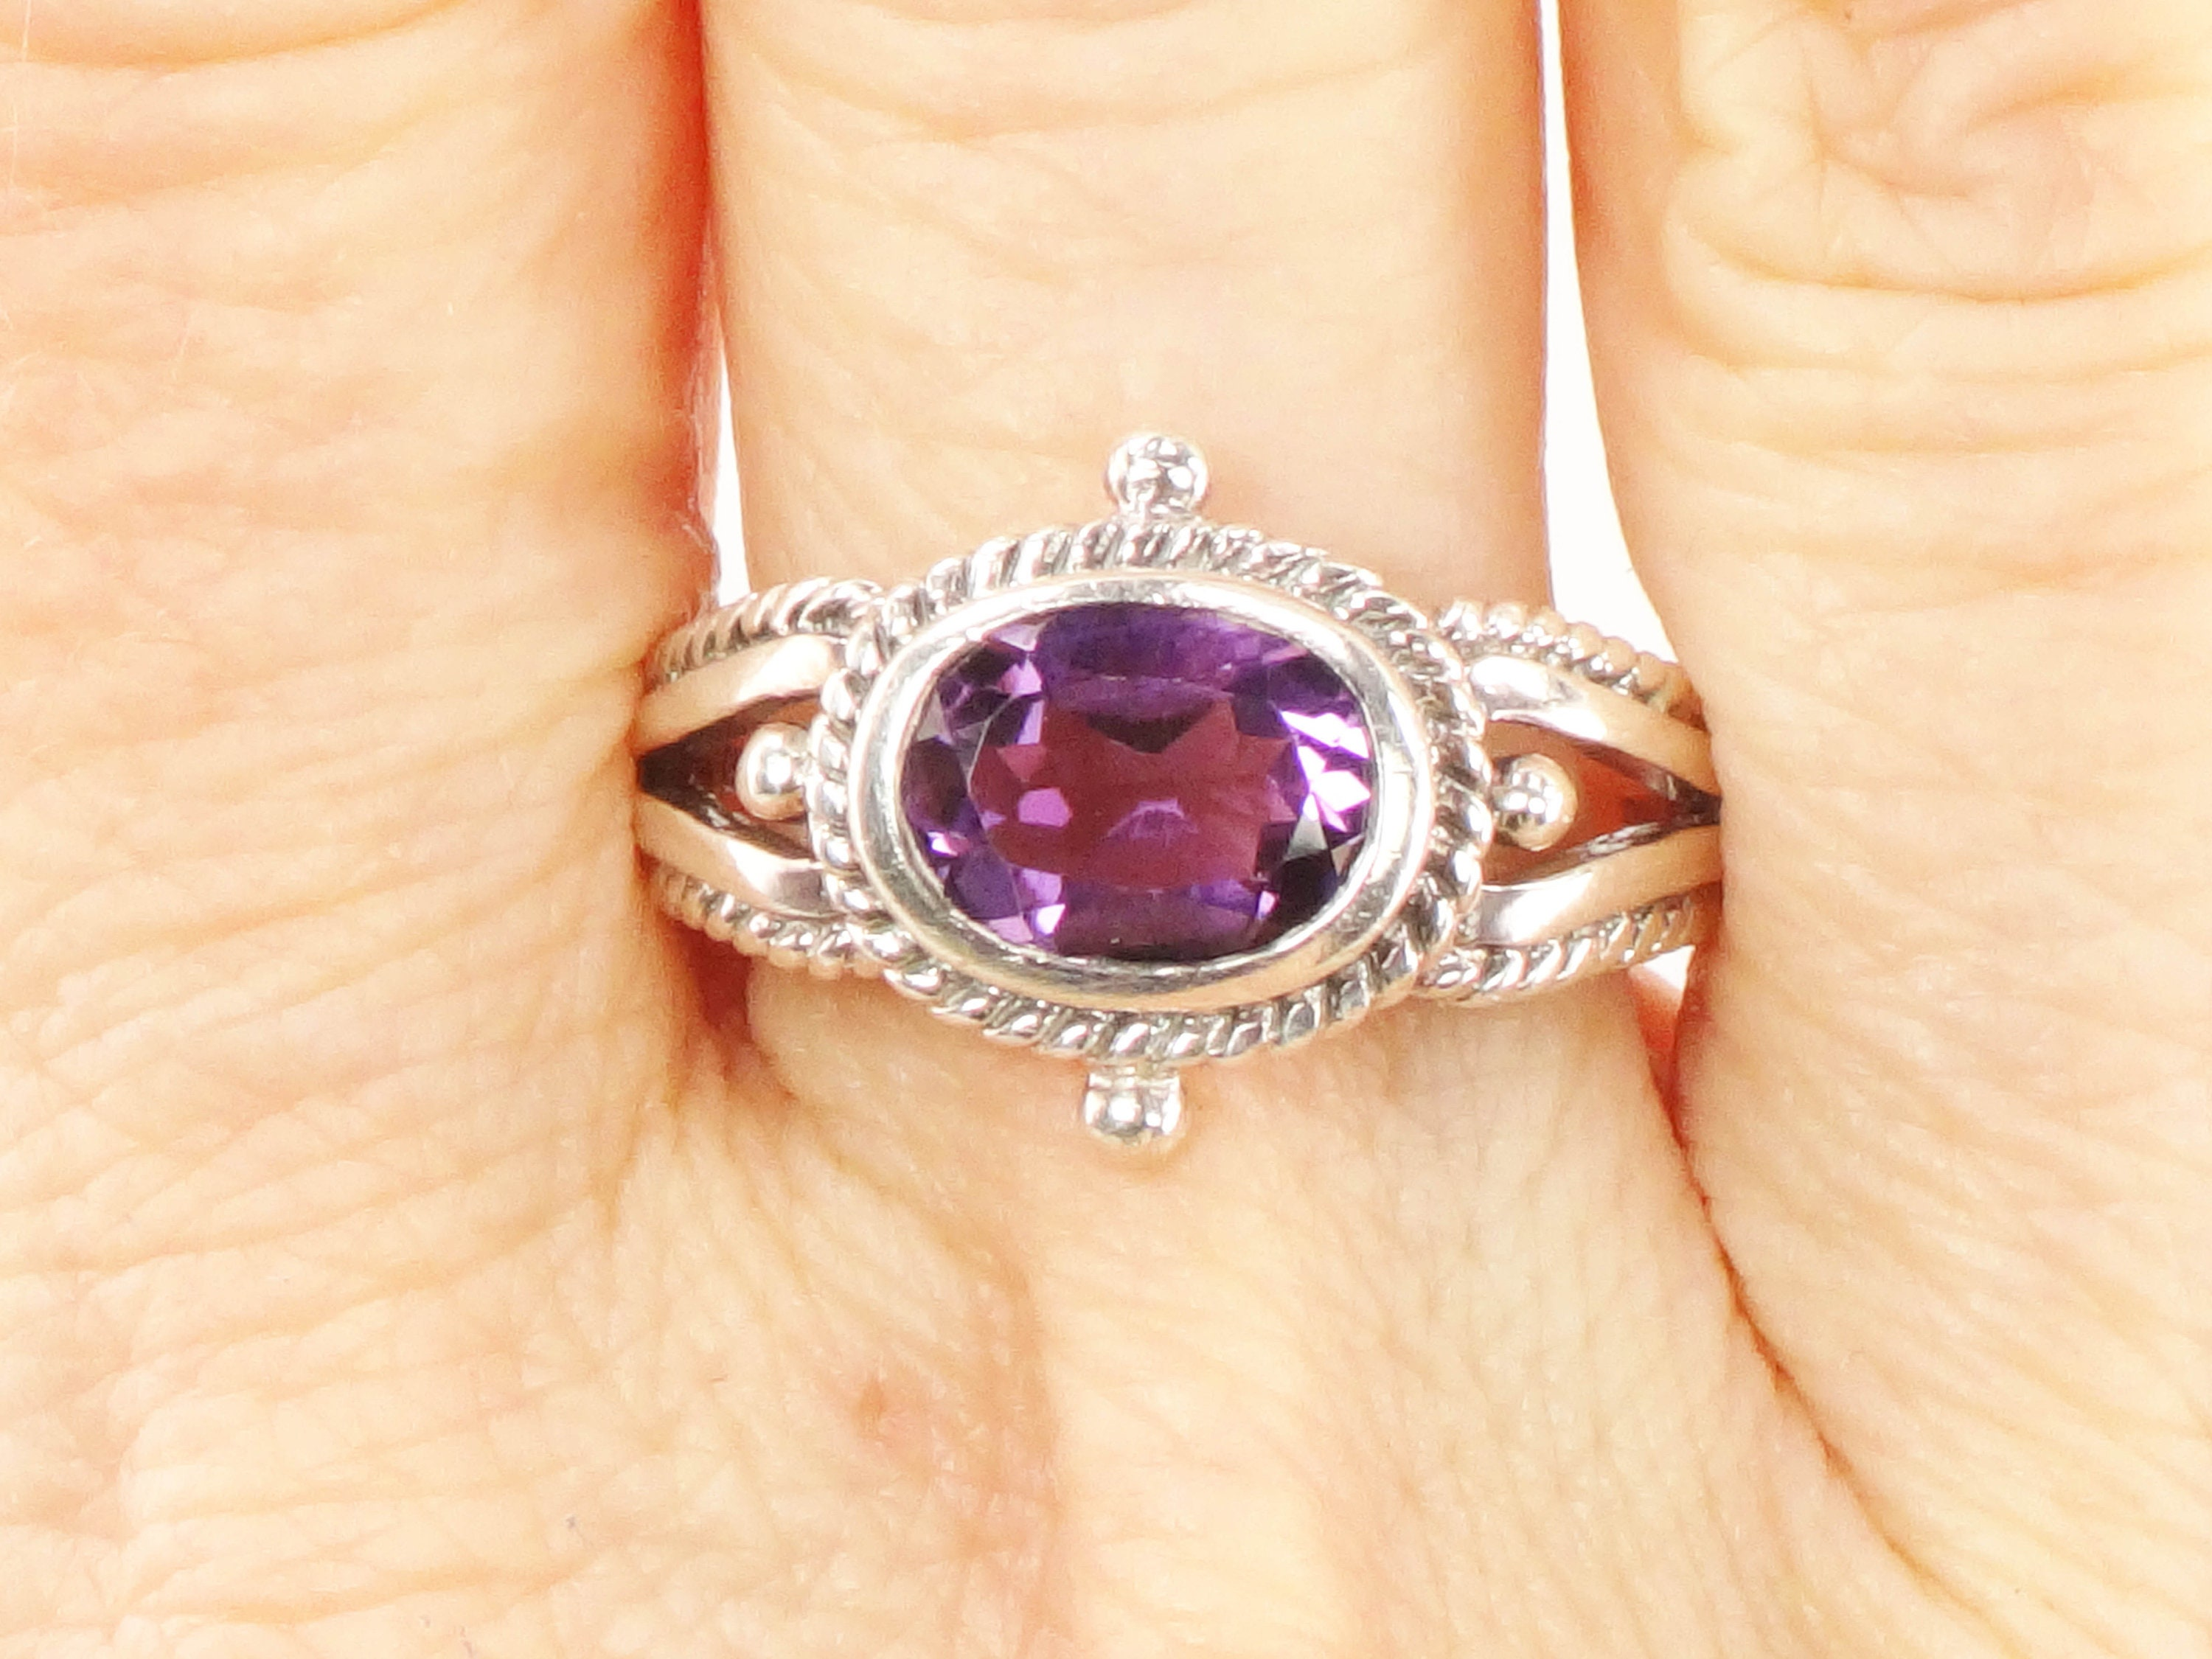 Faceted Gemstone Silver Ring with Balls February  Birthstone Jewellery Amethyst Silver Ring